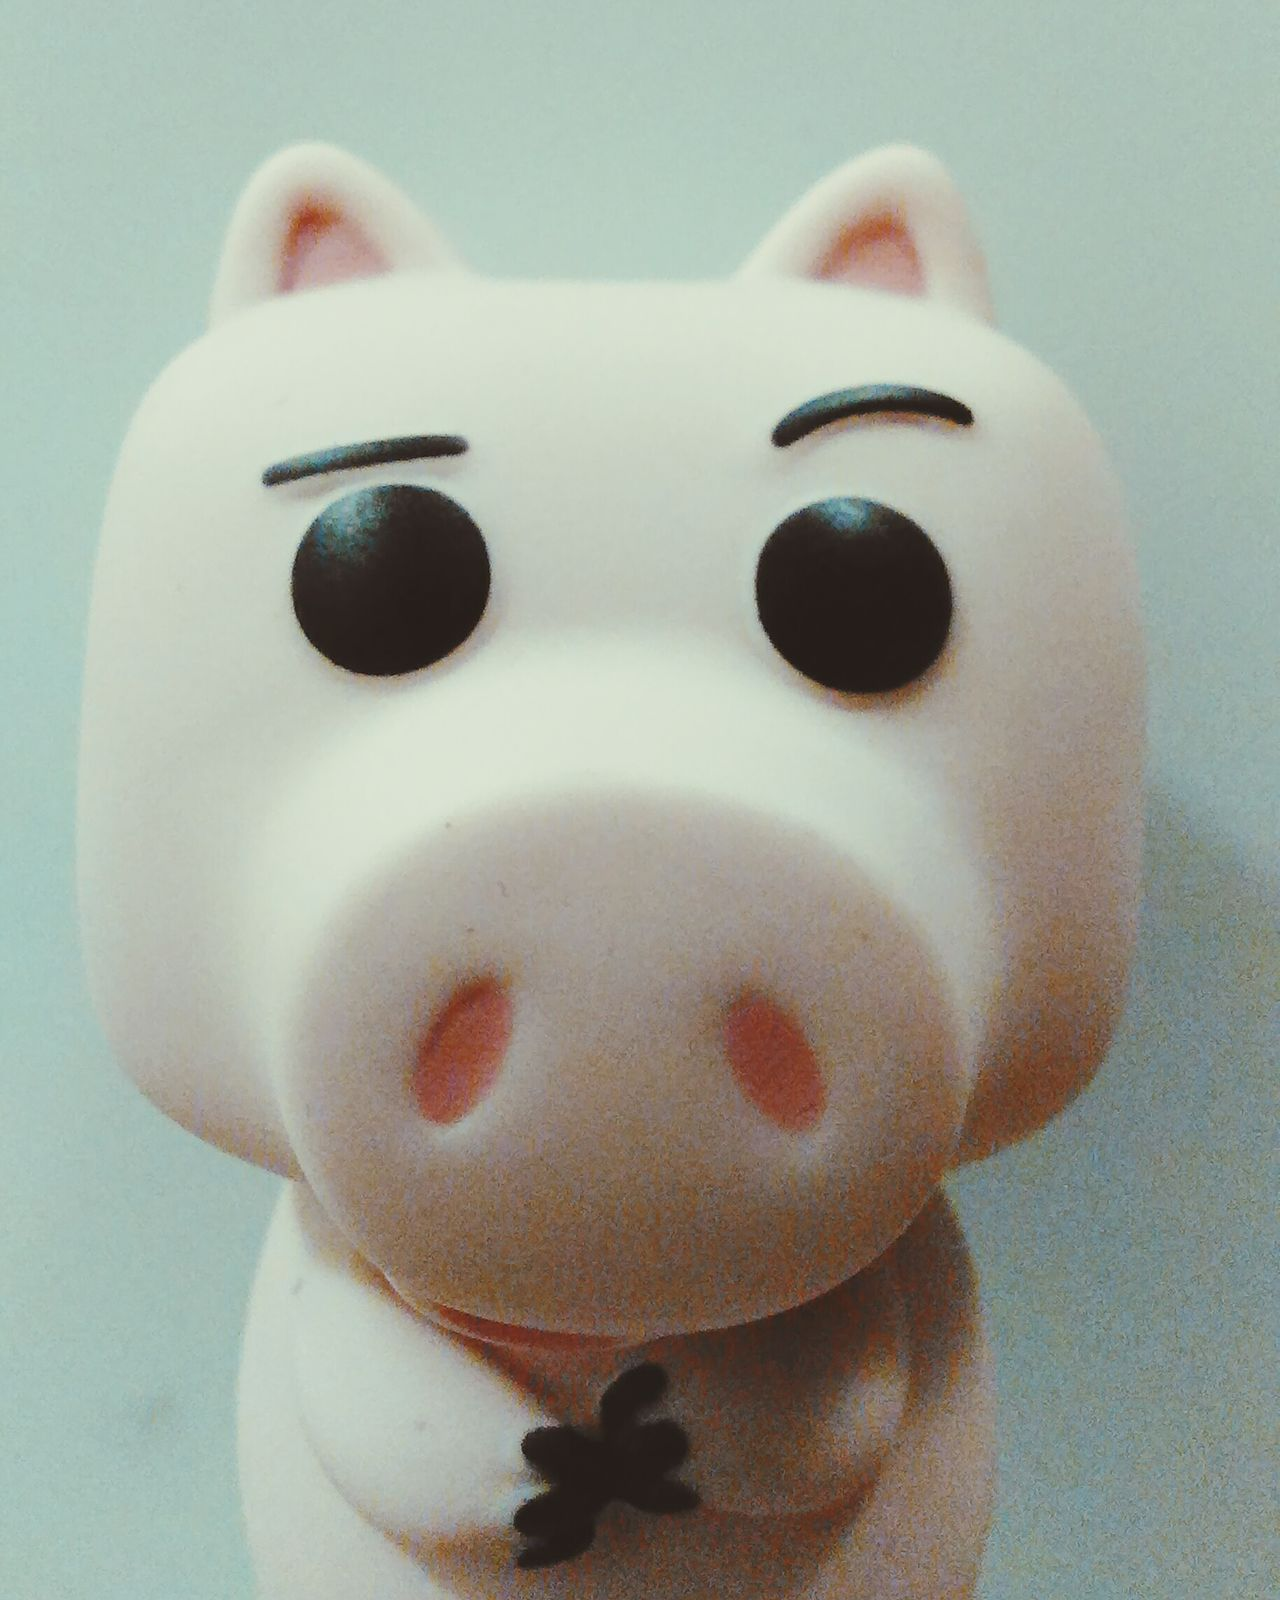 Close-up Indoors  Single Object Still Life Hamm Toystory Extreme Close-up Creativity Indoors  Upclose  White Background Studio Shot Pink Piggy Vibrant Color Funkopopvinyl Imagination Studio Time  No People ToyStory2 ToyStory3 Popfunko Full Frame Bestever Front View